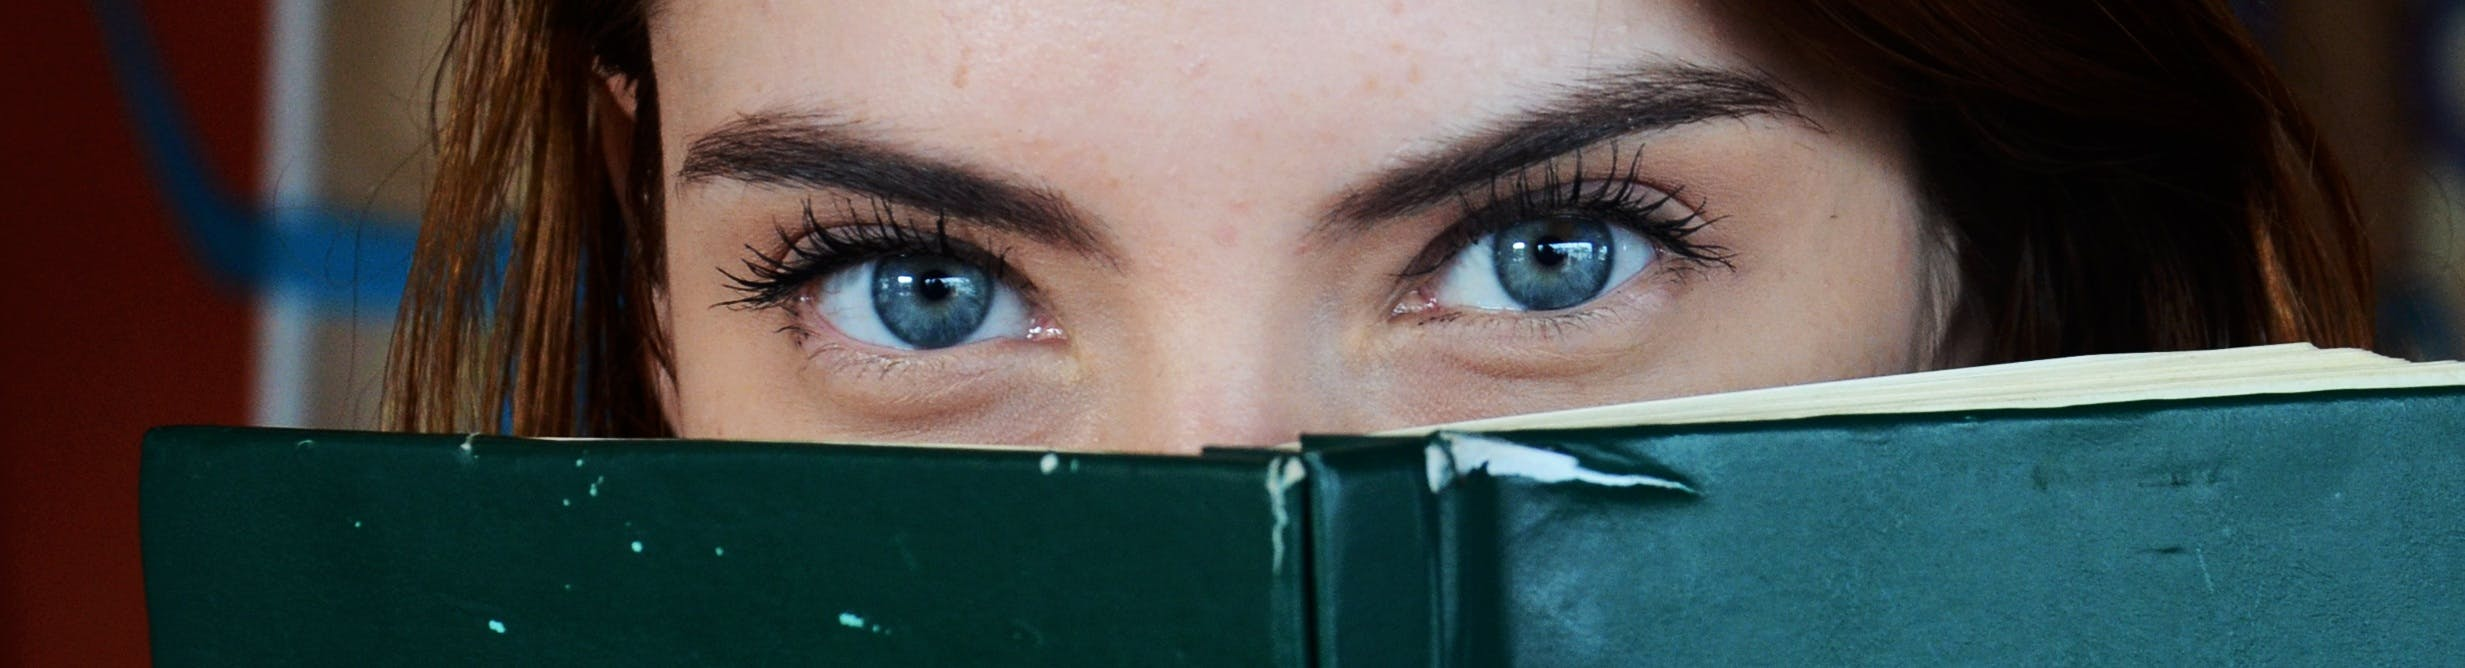 Woman Covering Her Face With Green Book